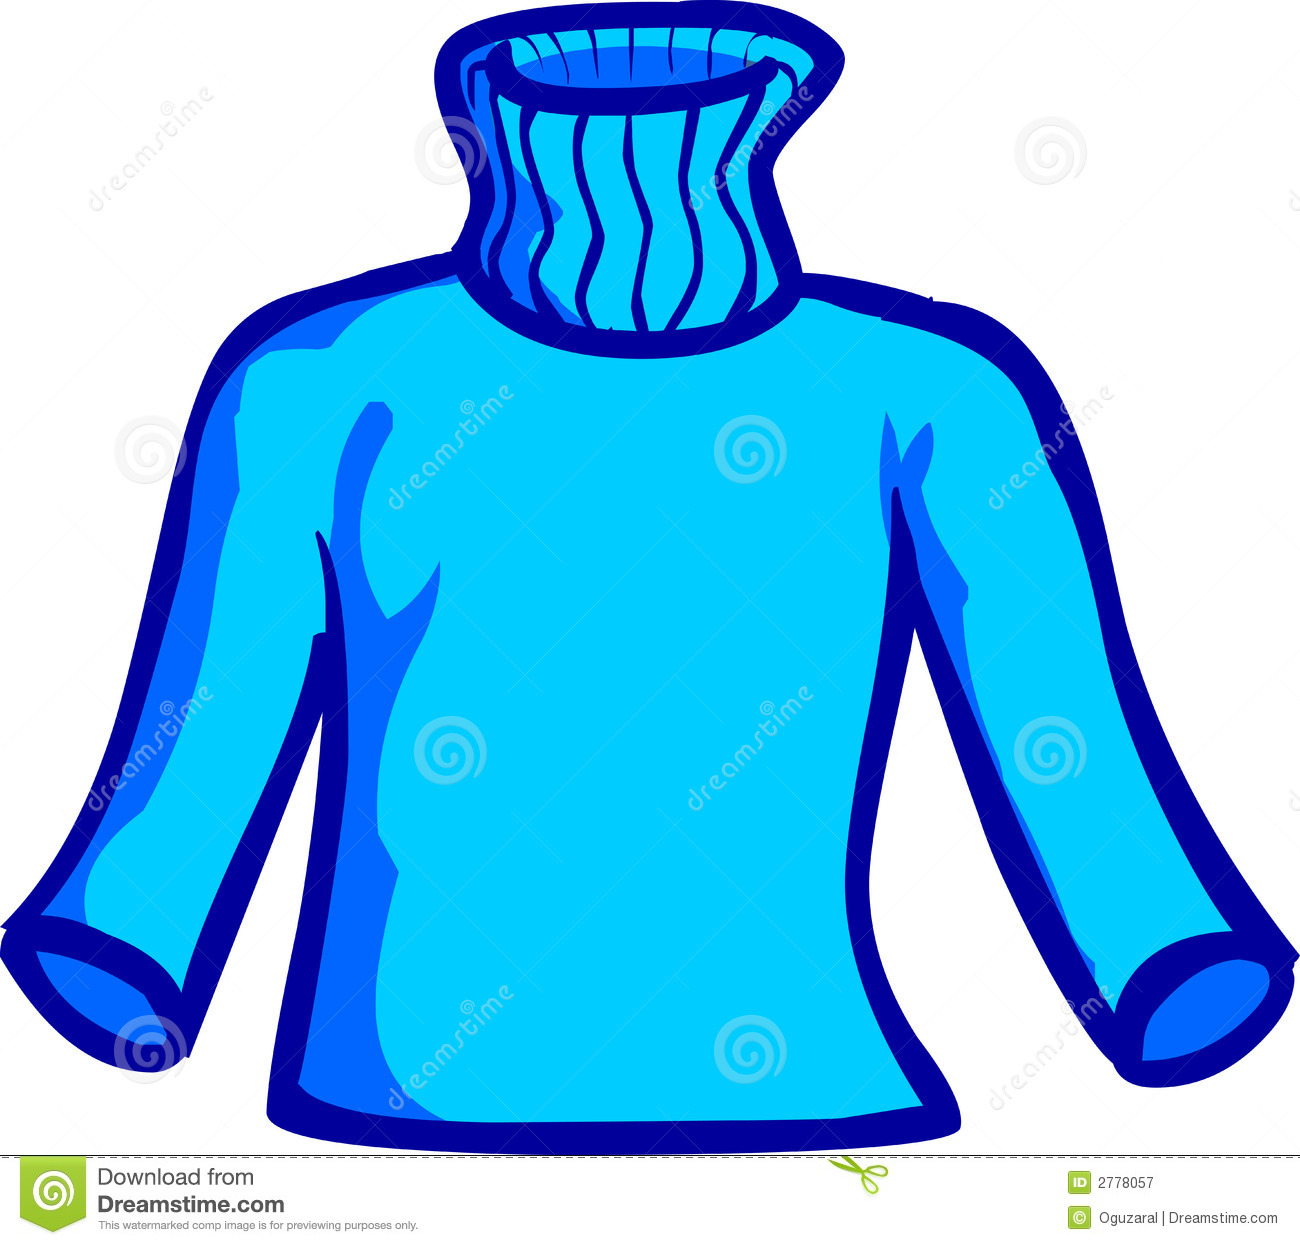 Blue Sweater Royalty Free Stock Photography - Image: 2778057